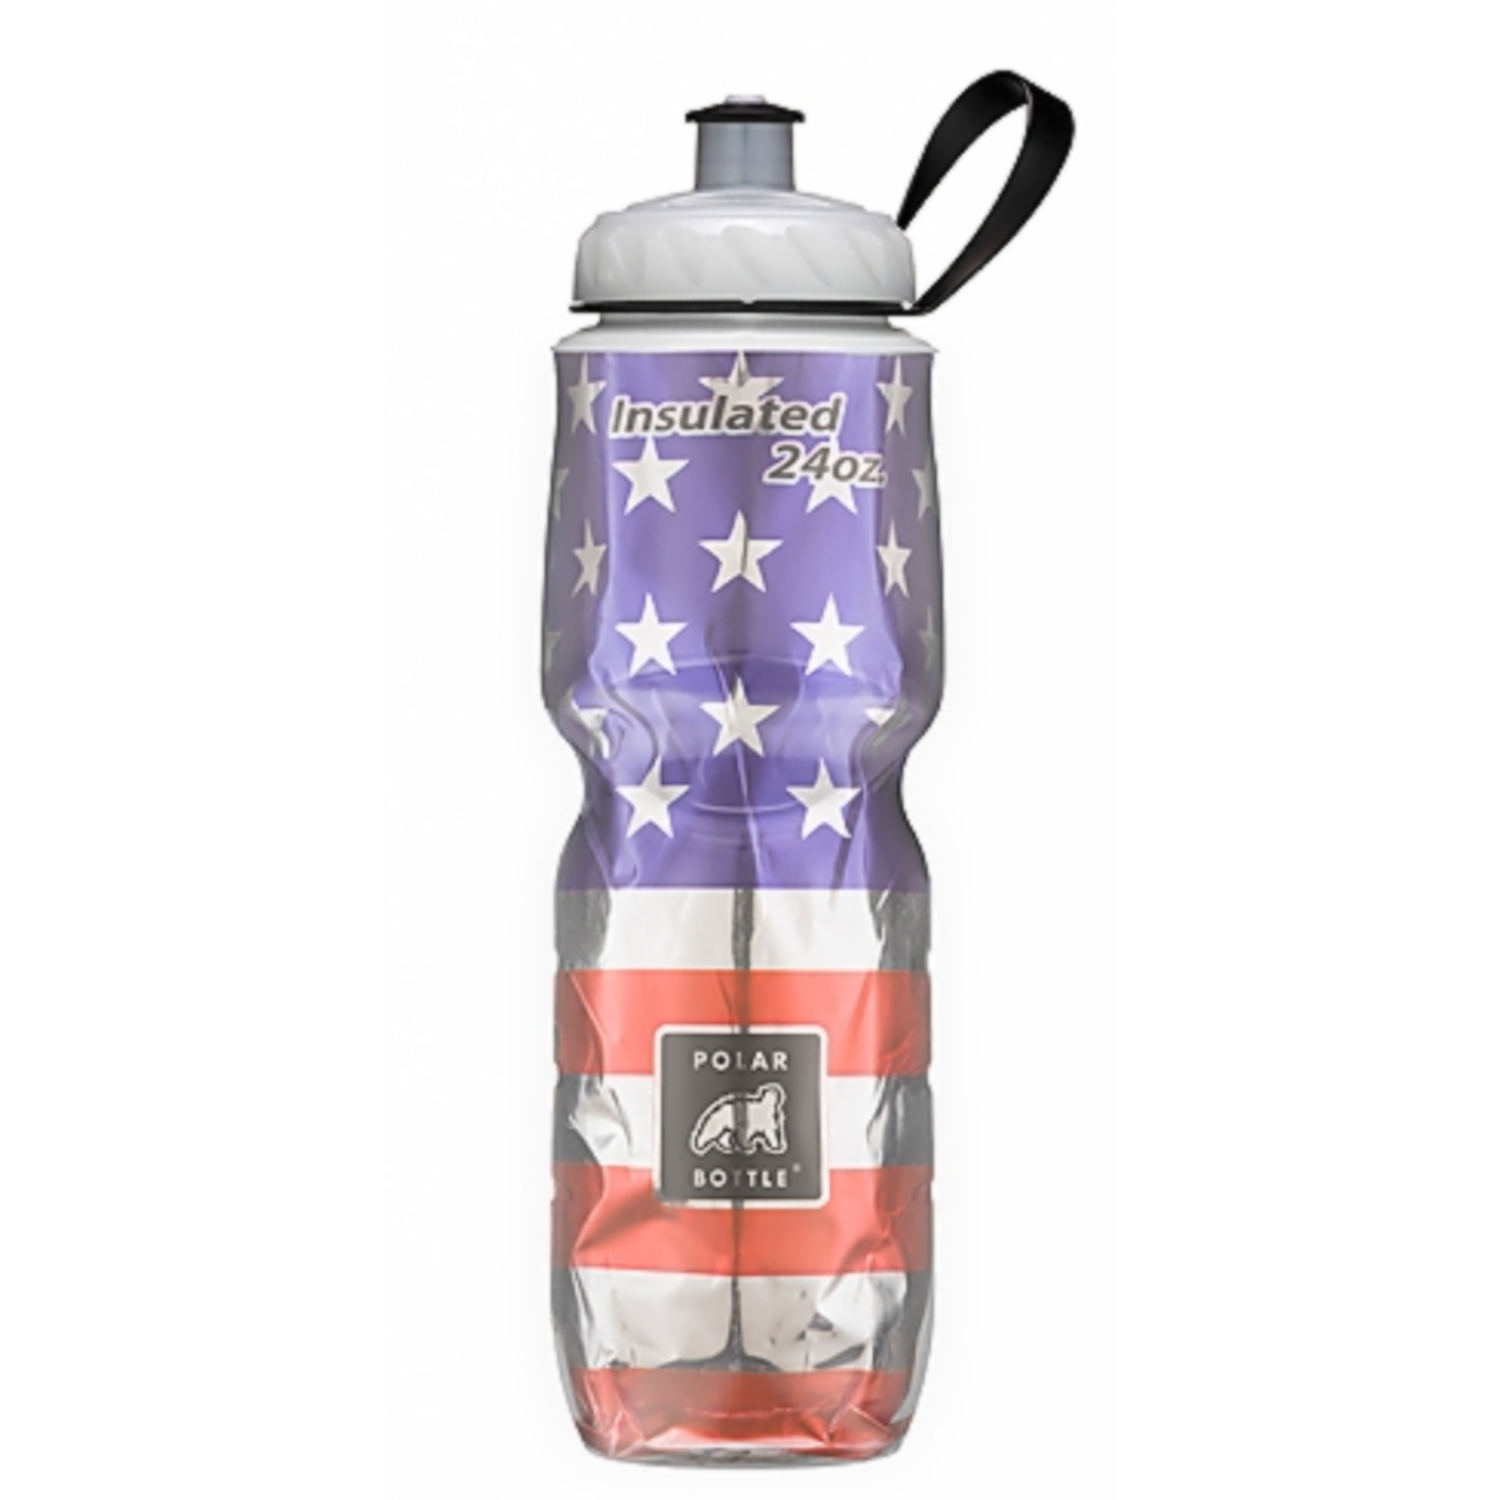 Polar Bottle  Blue/Red/Silver  Plastic  Double Wall Insulation  BPA Free 24 oz. Water Bottle